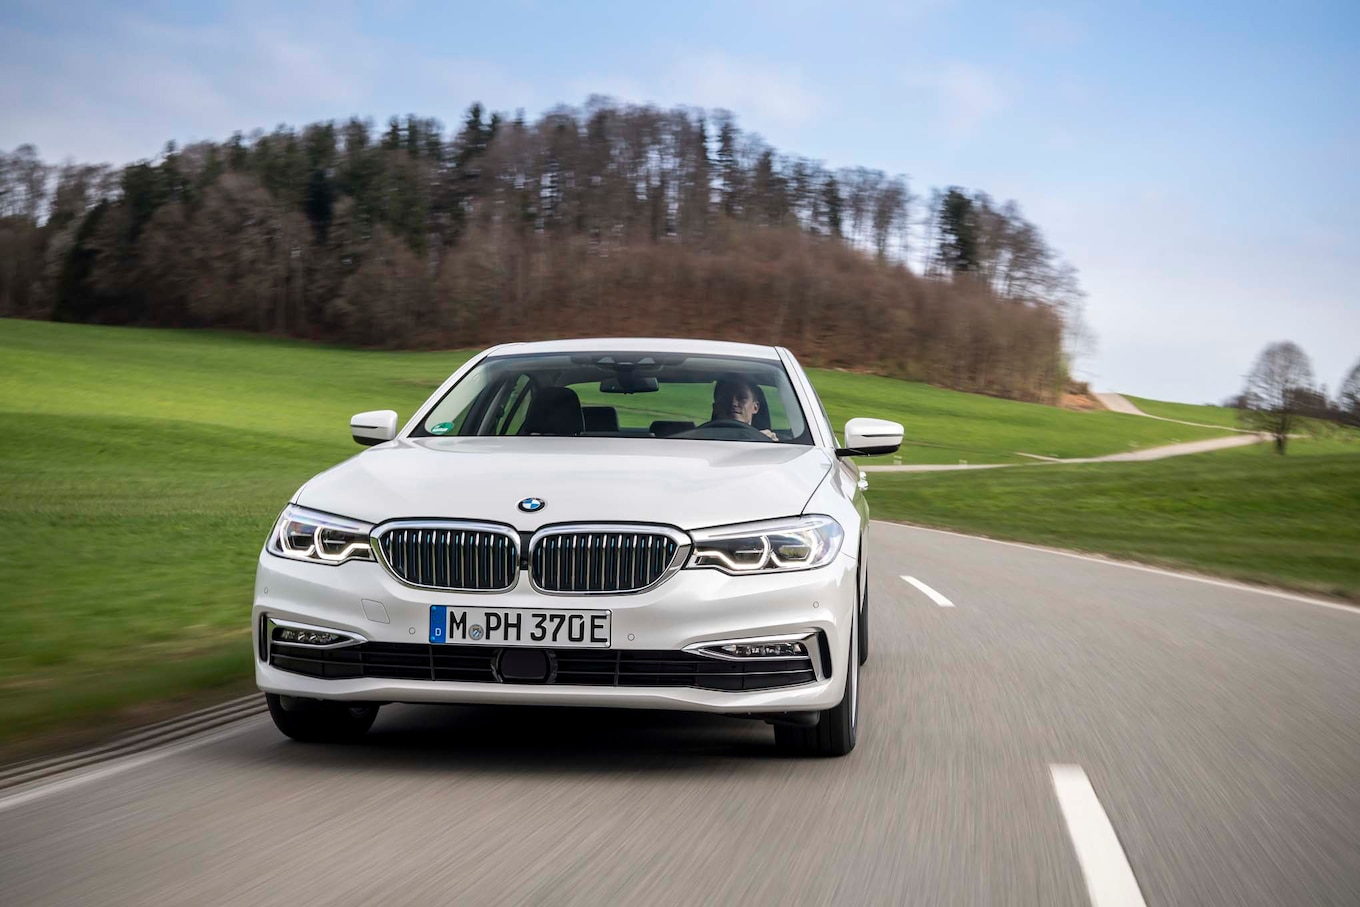 2018 BMW 530e eDrive Plug-In Hybrid First Drive Review: eDrive eNigma - Motor Trend